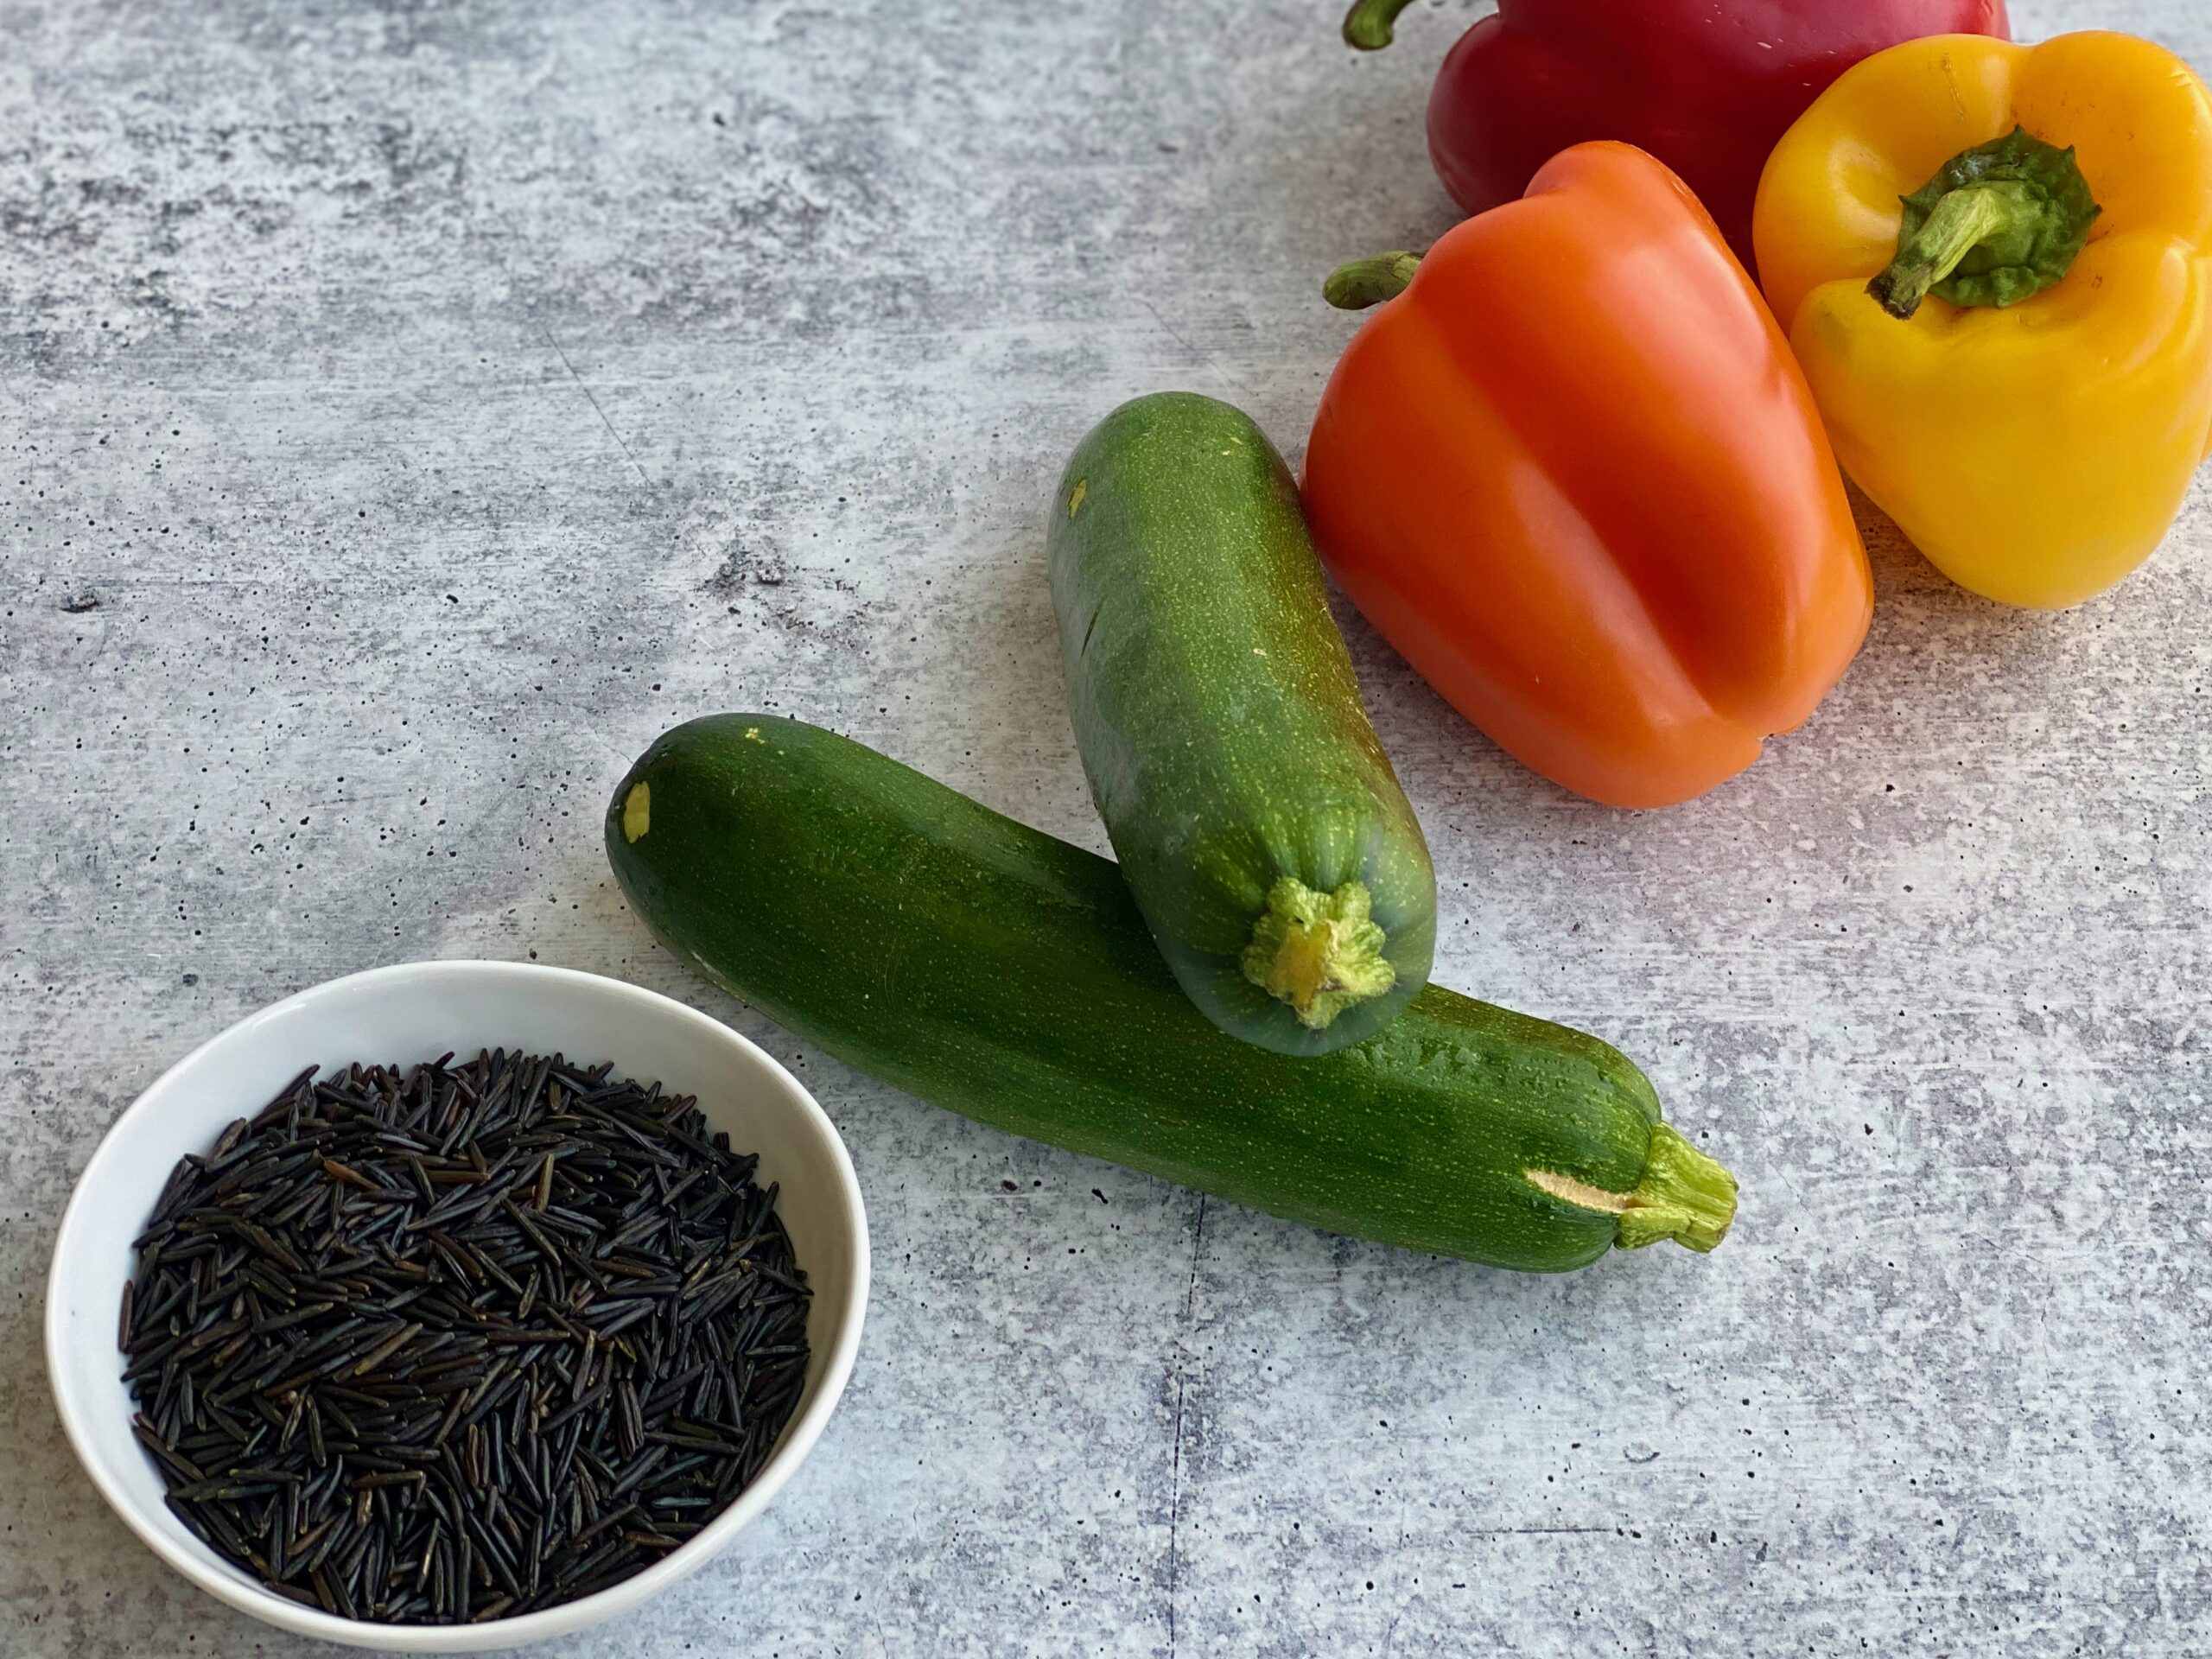 An image of rice, zucchini and bell peppers